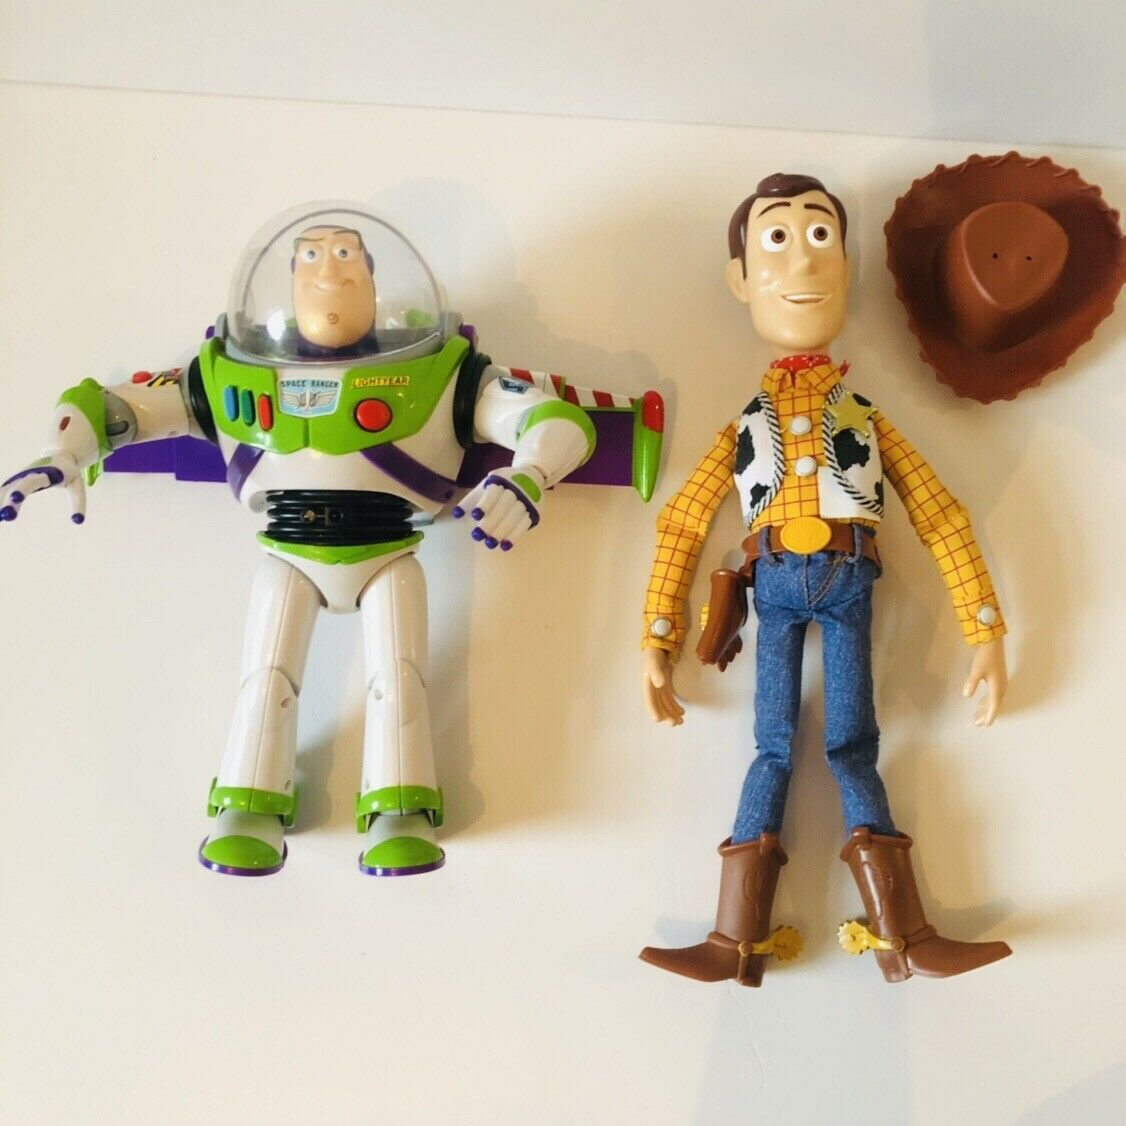 Toy Story Interactive Ultimate Talking Buzz Lightyear